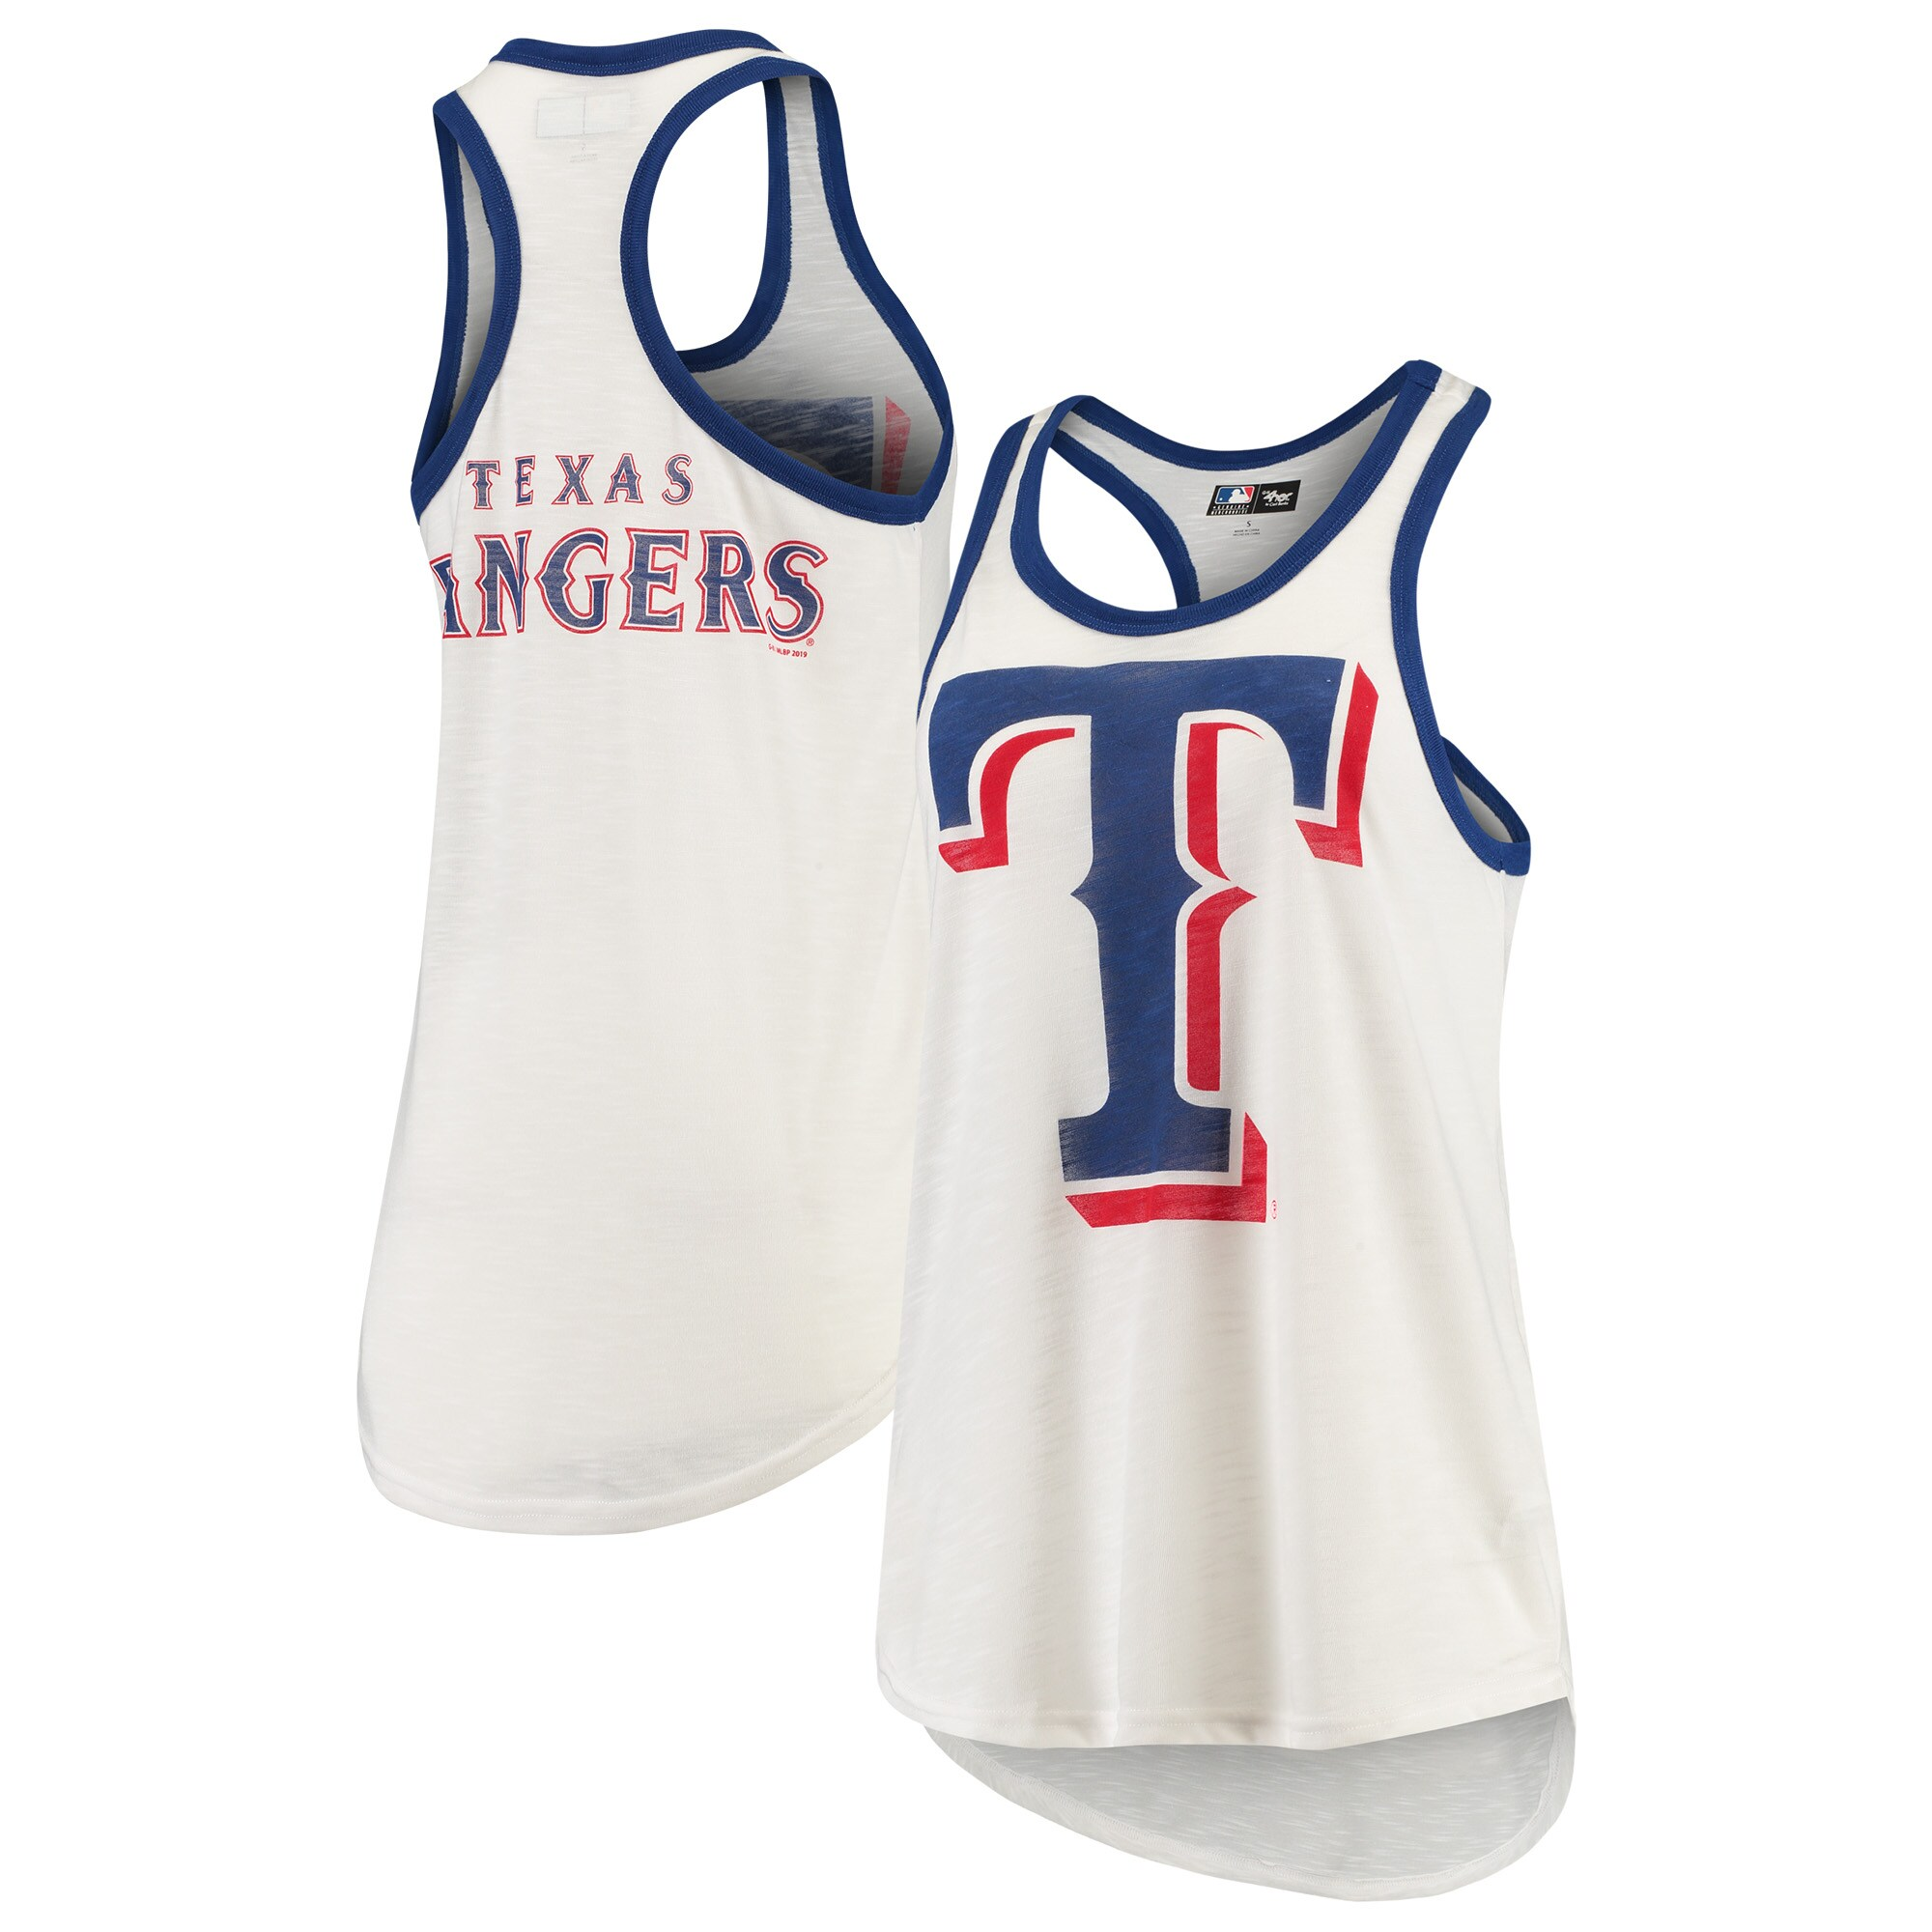 Texas Rangers G-III 4Her by Carl Banks Women's Tater Racerback Tank Top - White